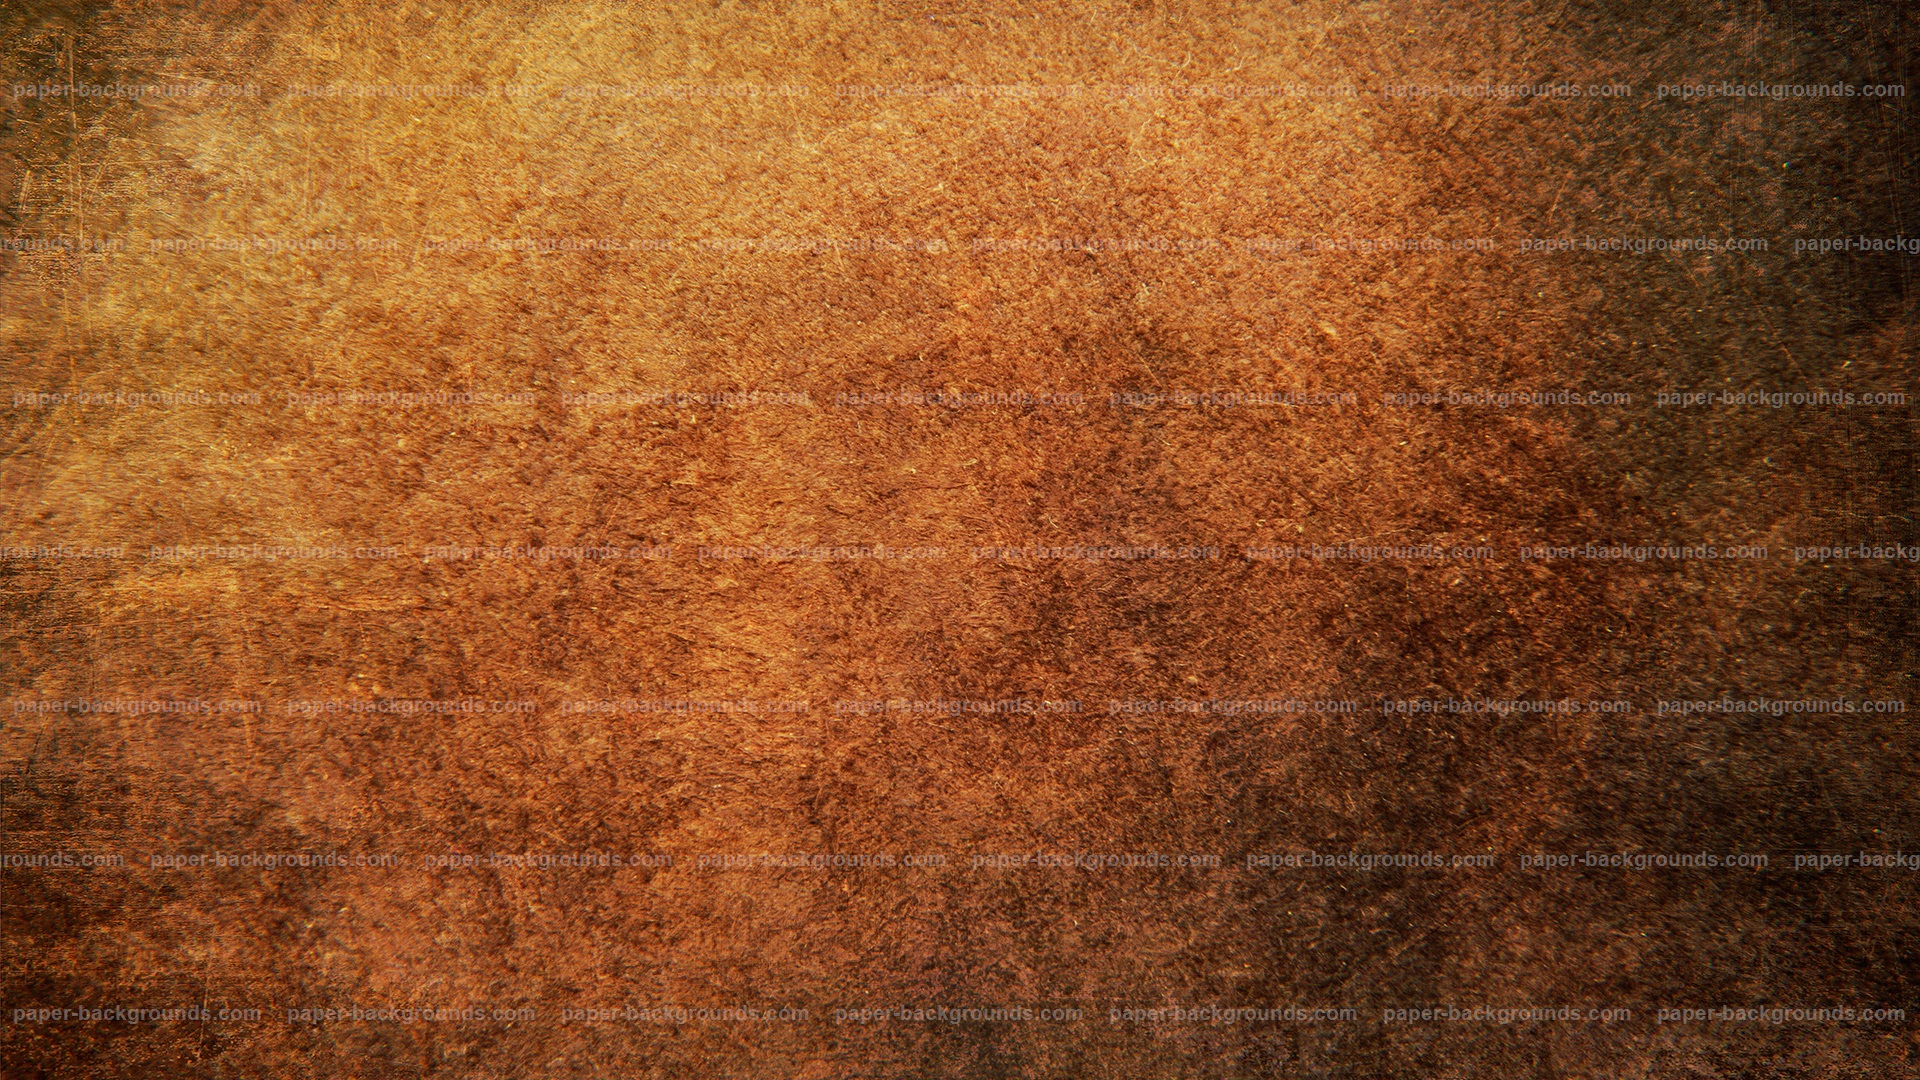 Fantastic Wallpaper Halloween Grunge - brown-grunge-texture-background-hd  You Should Have_444064.jpg